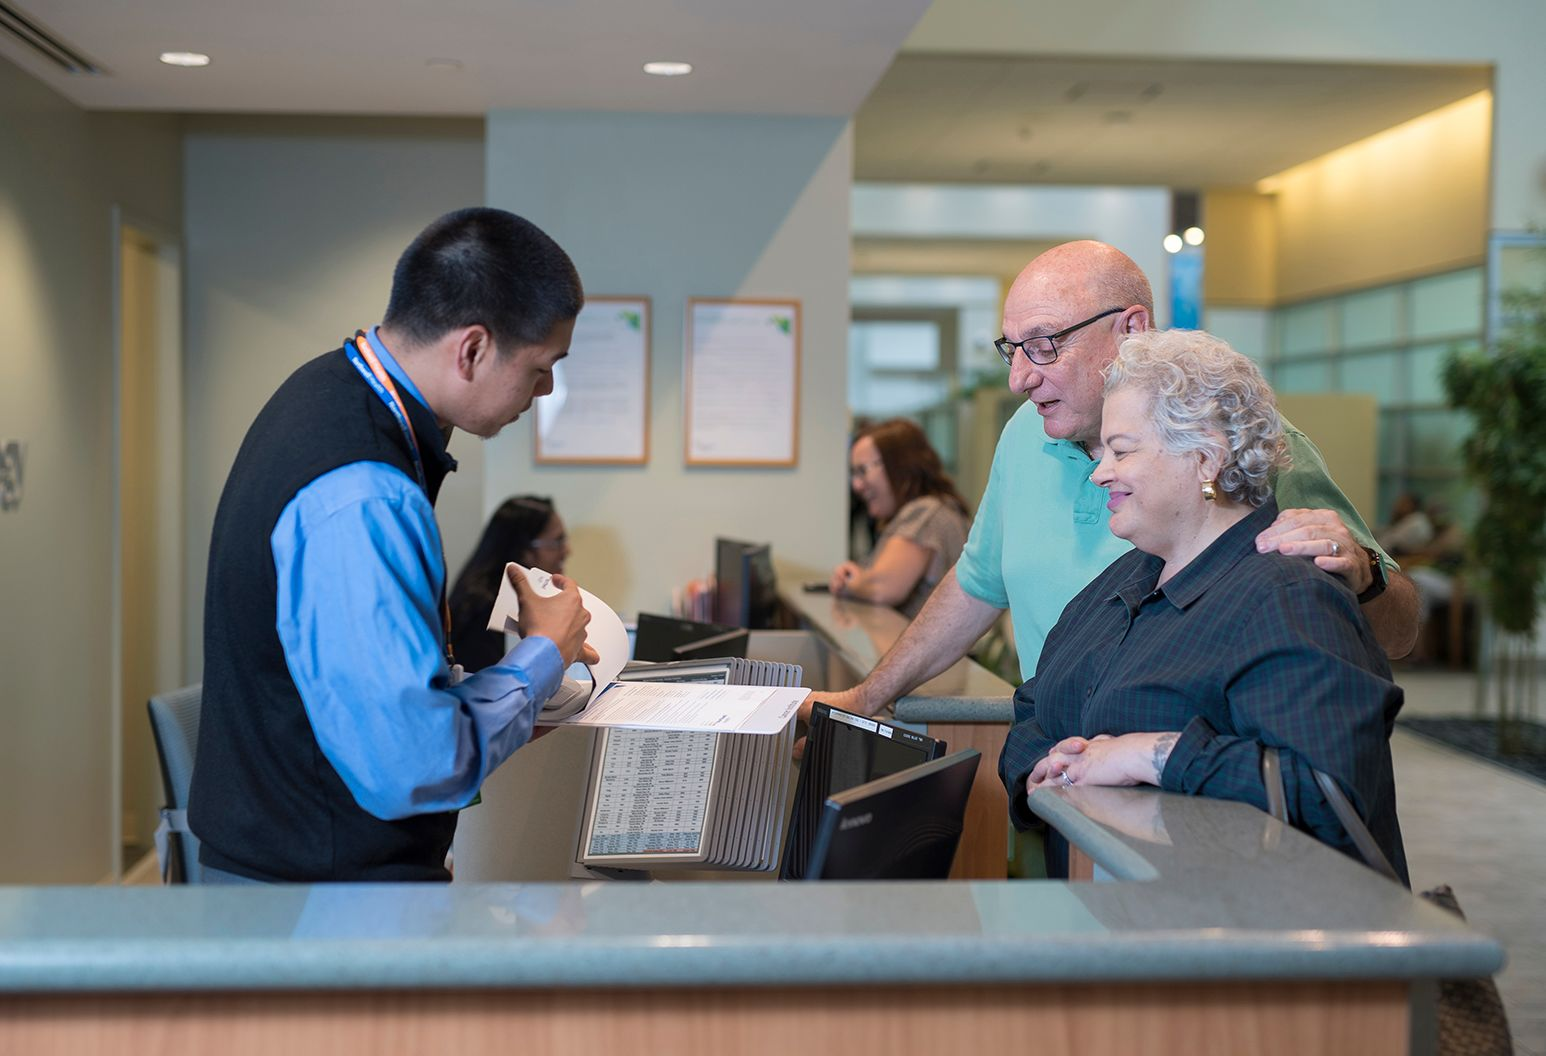 Senior couple checking in at an imaging facility.